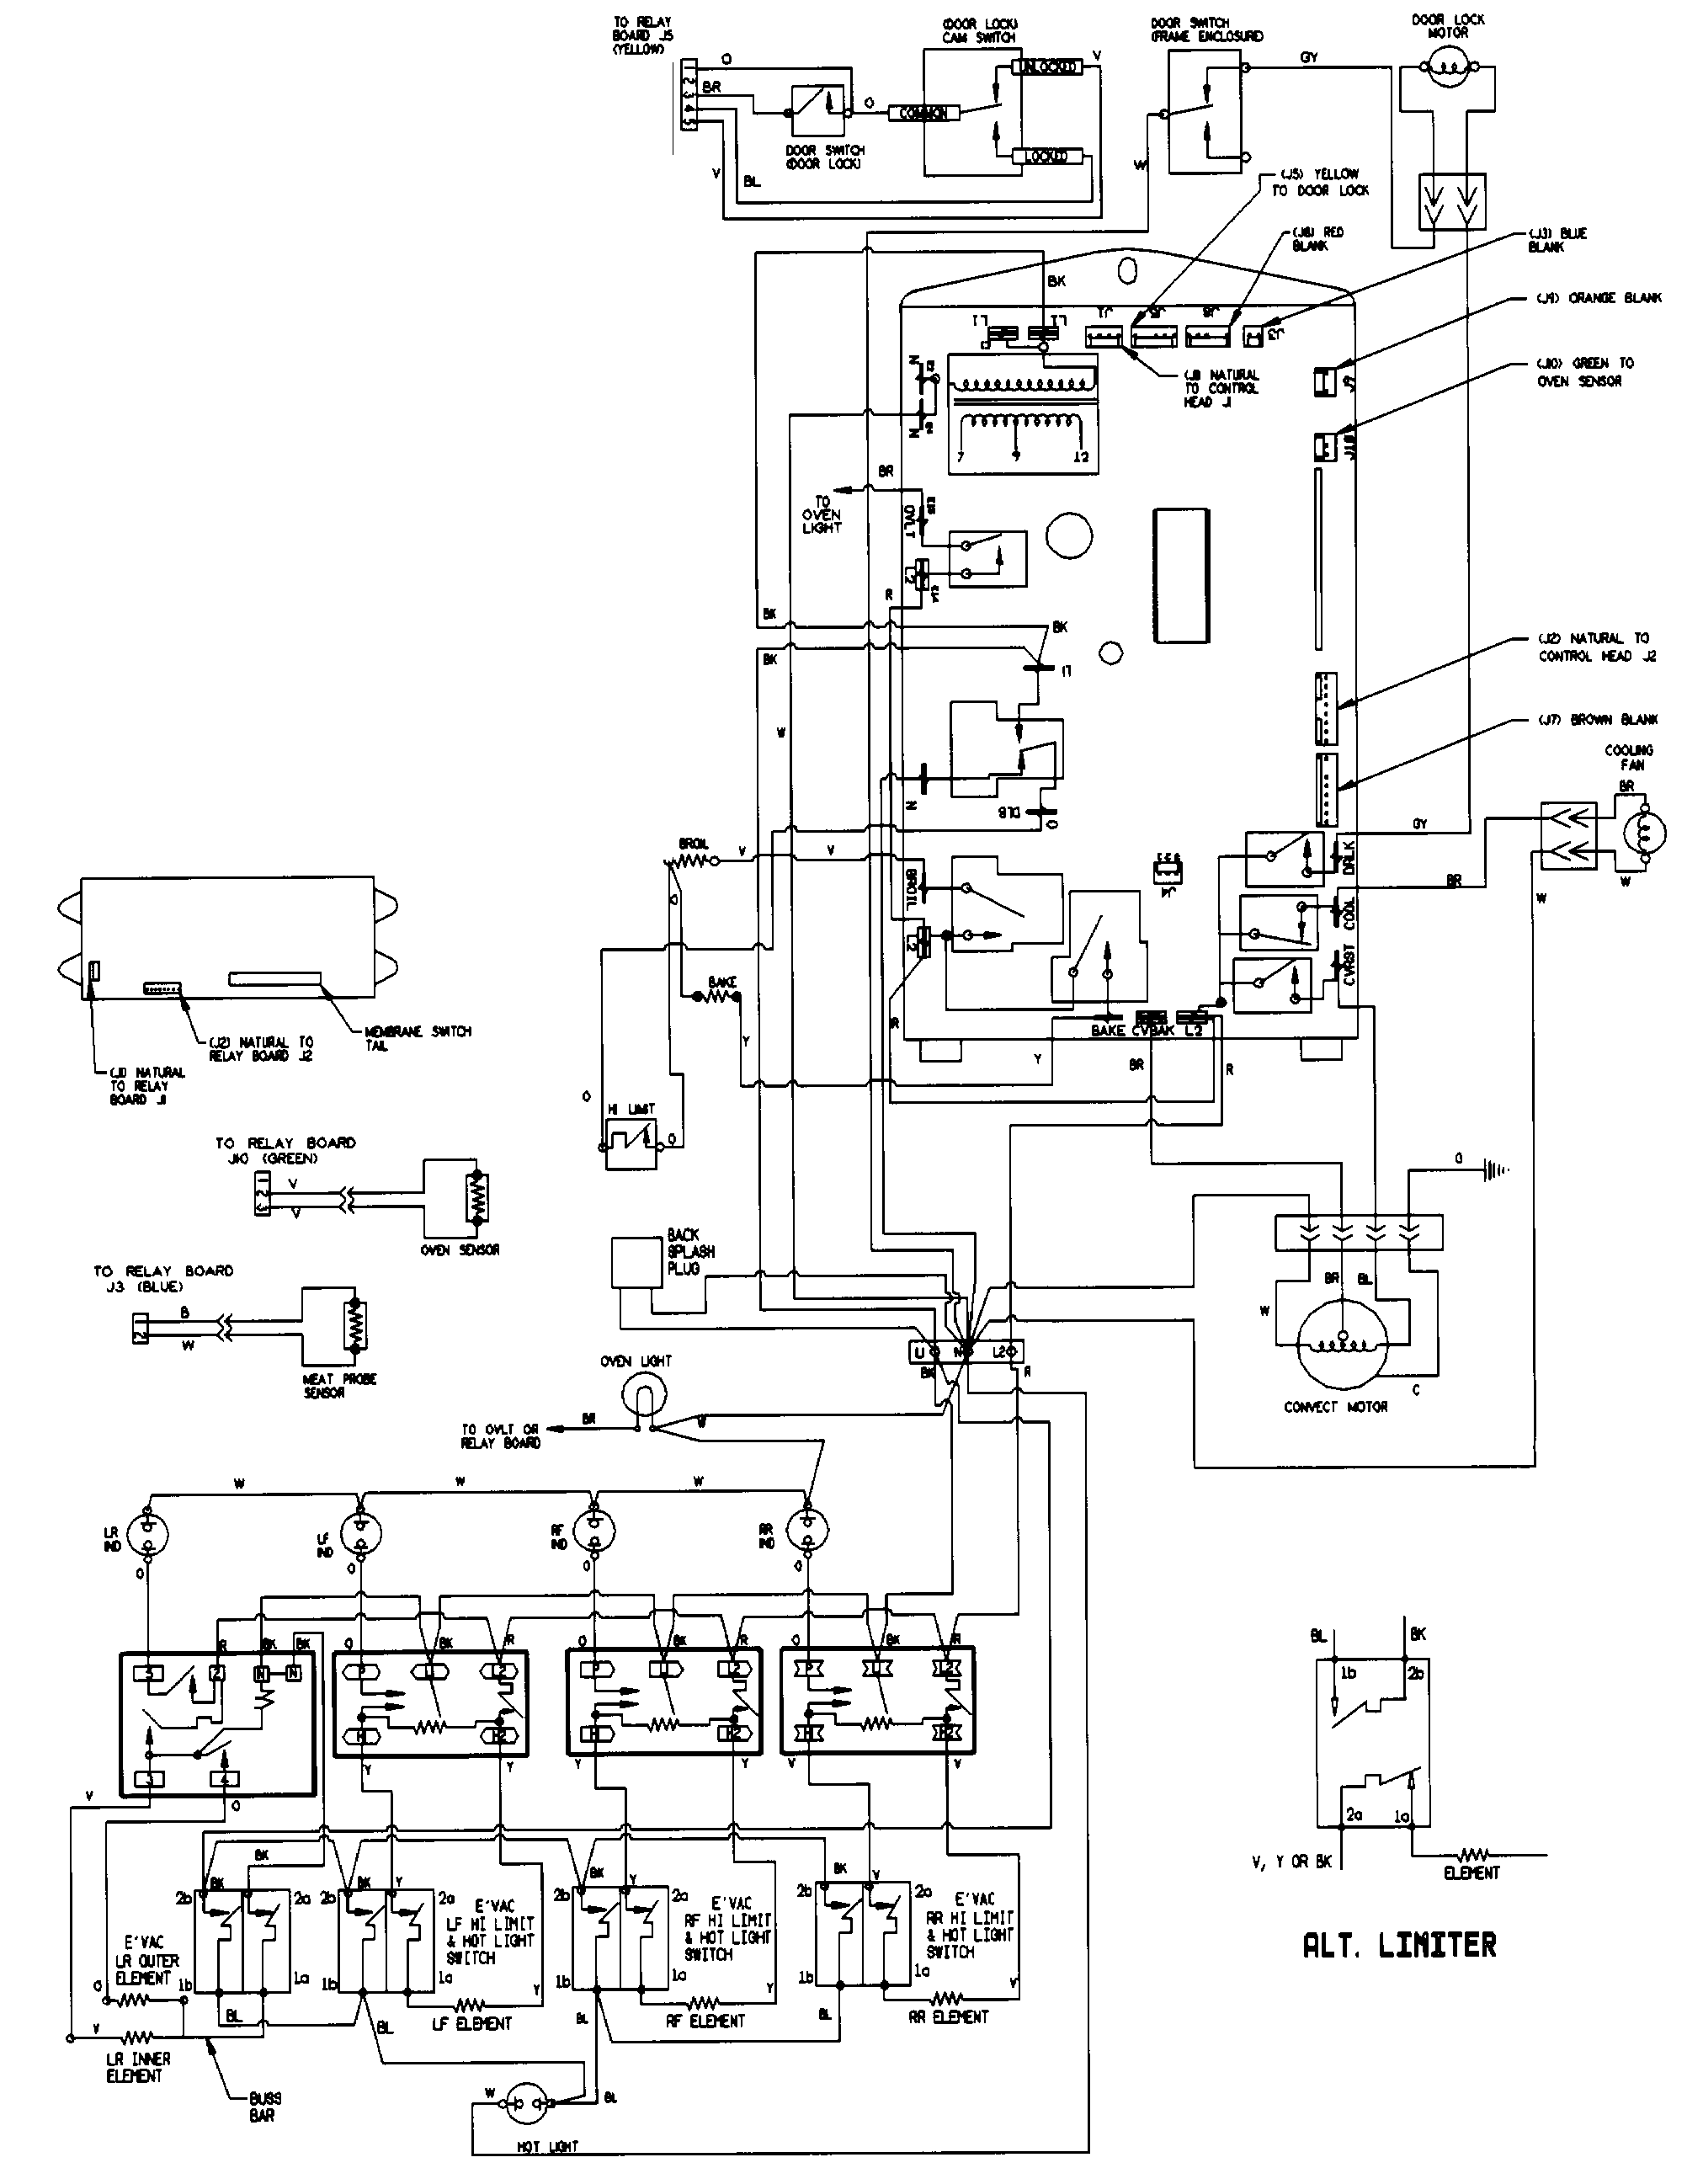 Wiring Diagram Of Washing Machine With Dryer Http Bookingritzcarlton Info Wiring Diagram Of Wa Electrical Wiring Diagram Diagram Electronic Circuit Projects